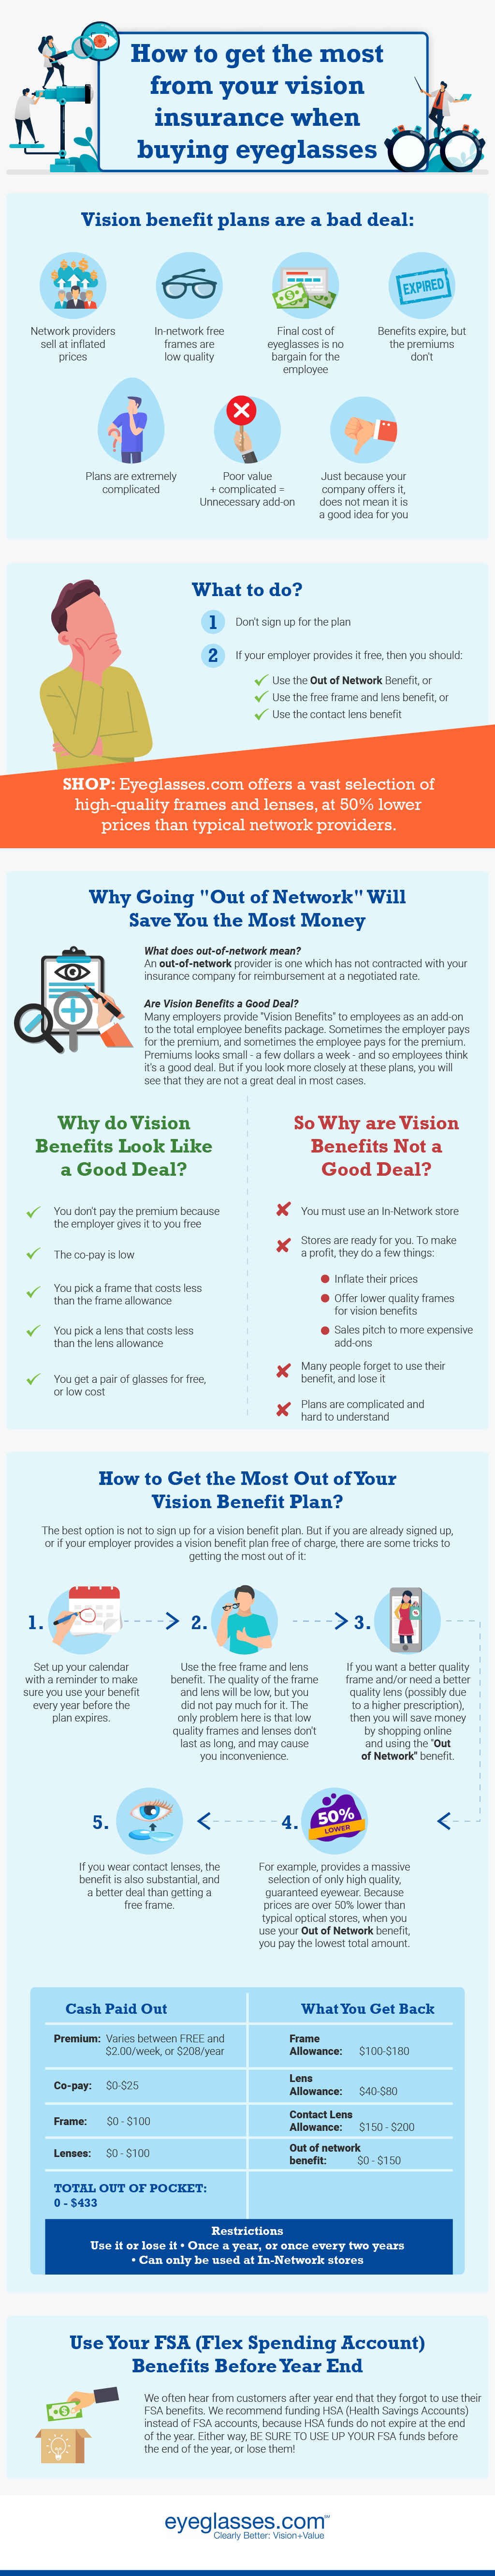 Eyemed Vision Insurance Eyemed Vision Benefits